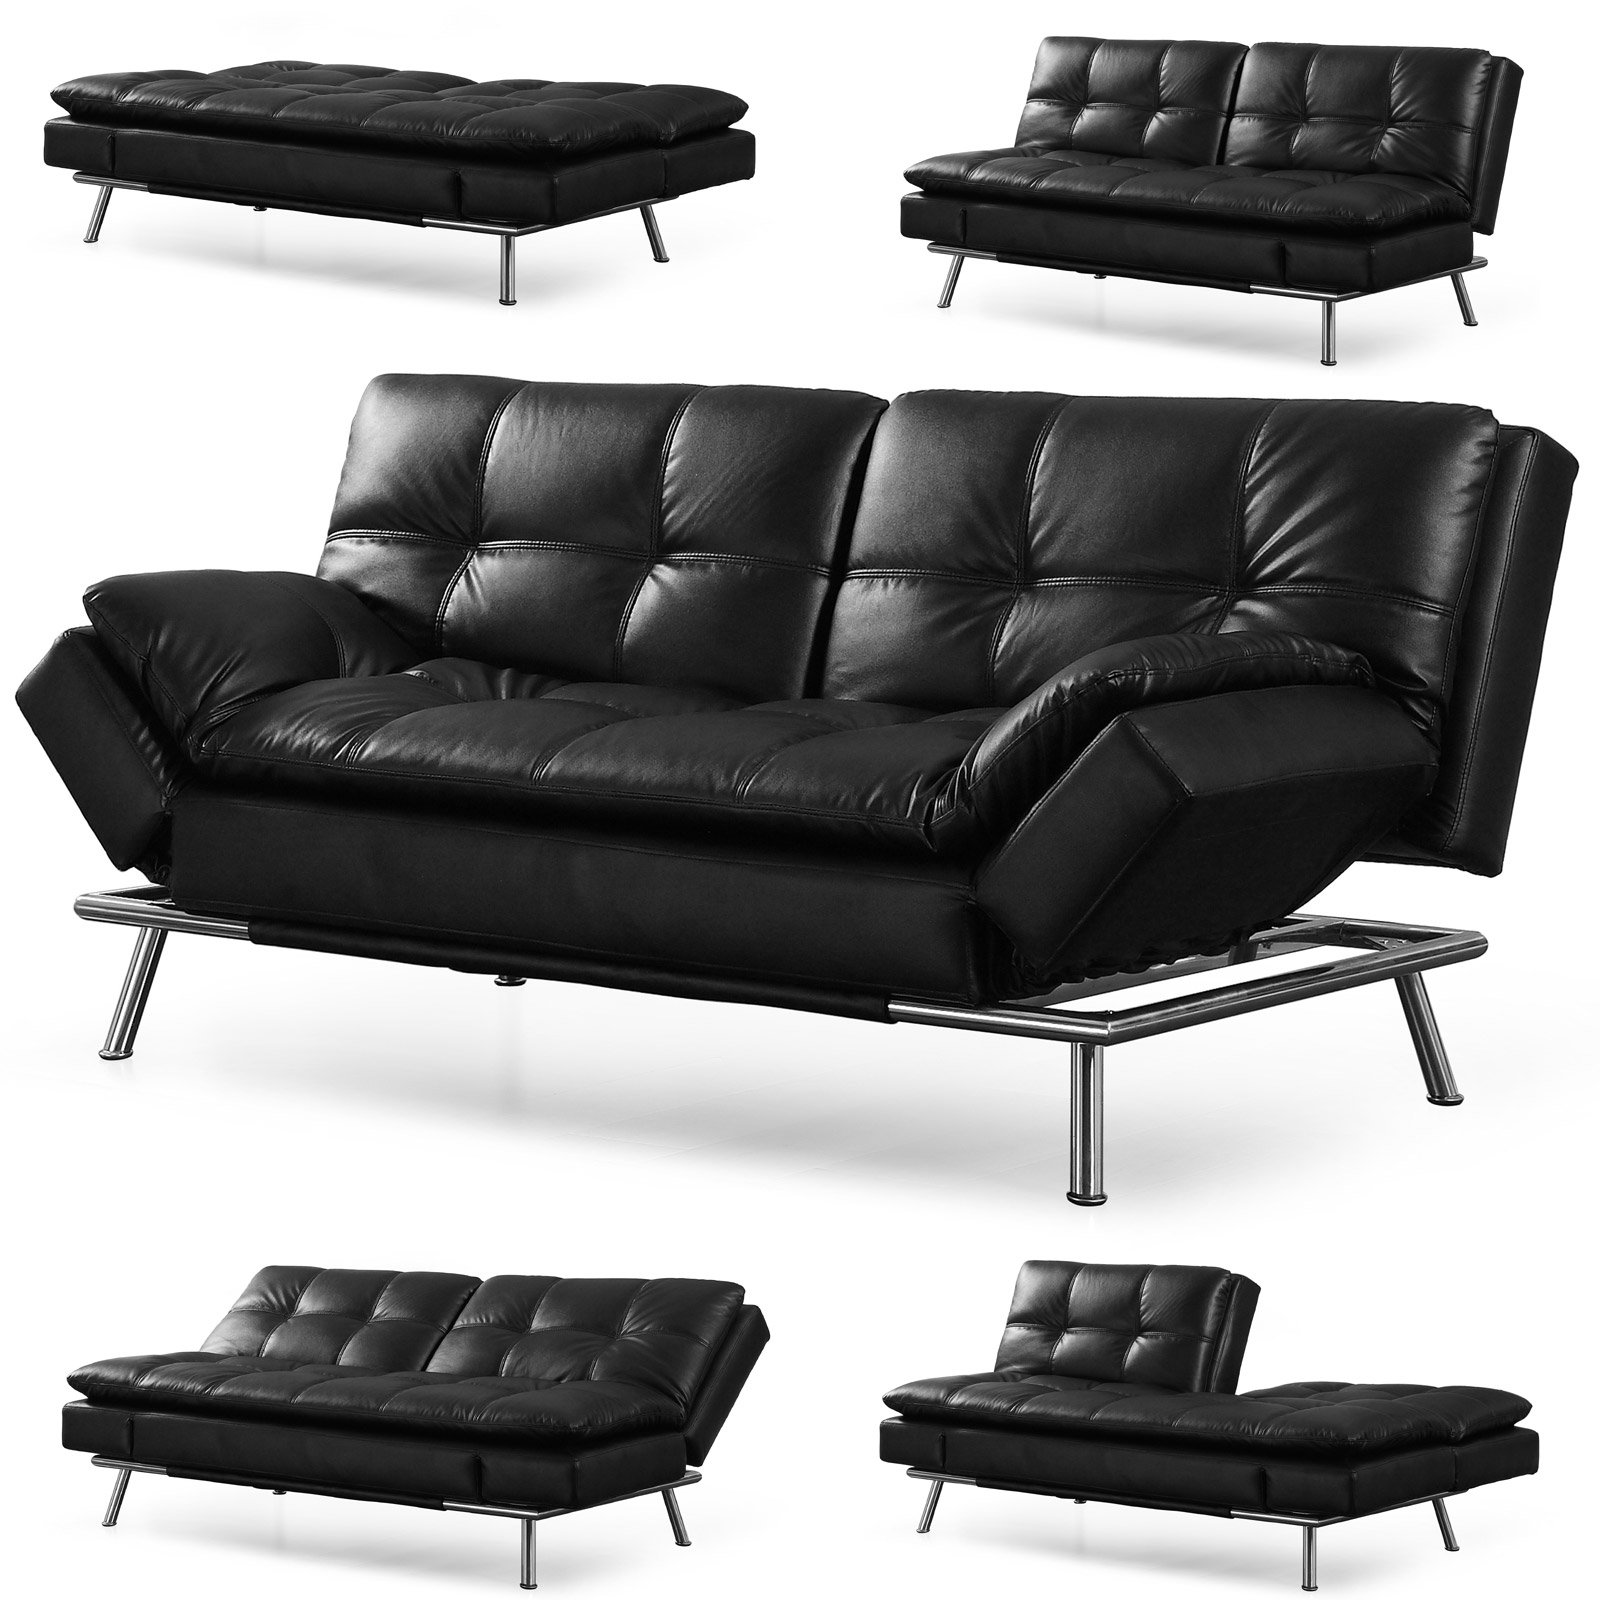 """Lifestyle Solutions CAMDMS3L10BK-B Matrix 79.5"""" Double Cushion 3 Seater Convertible Sofa with Faux Leather Upholstery in"""